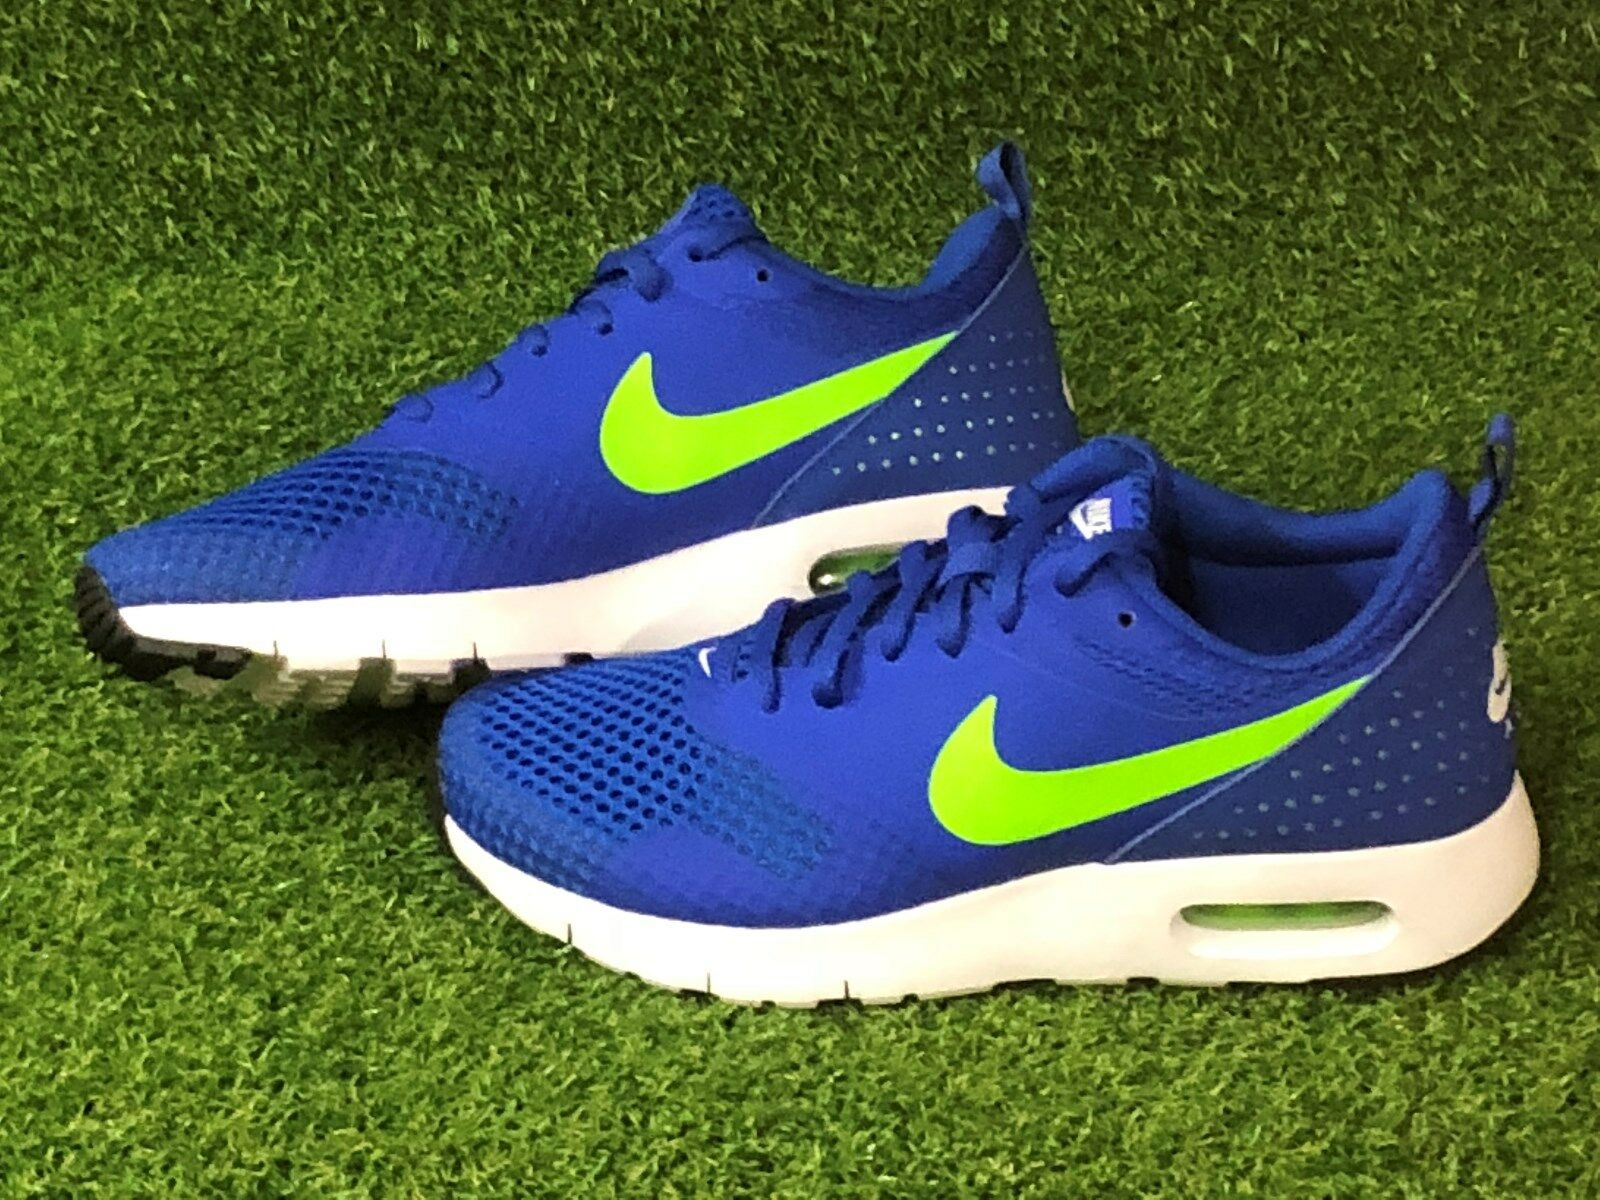 designer fashion efe6b cb49d Nike Air Max Tavas GS BR BR BR Sneaker Chaussures [828569 431] NEUF taille  choix 4d9030